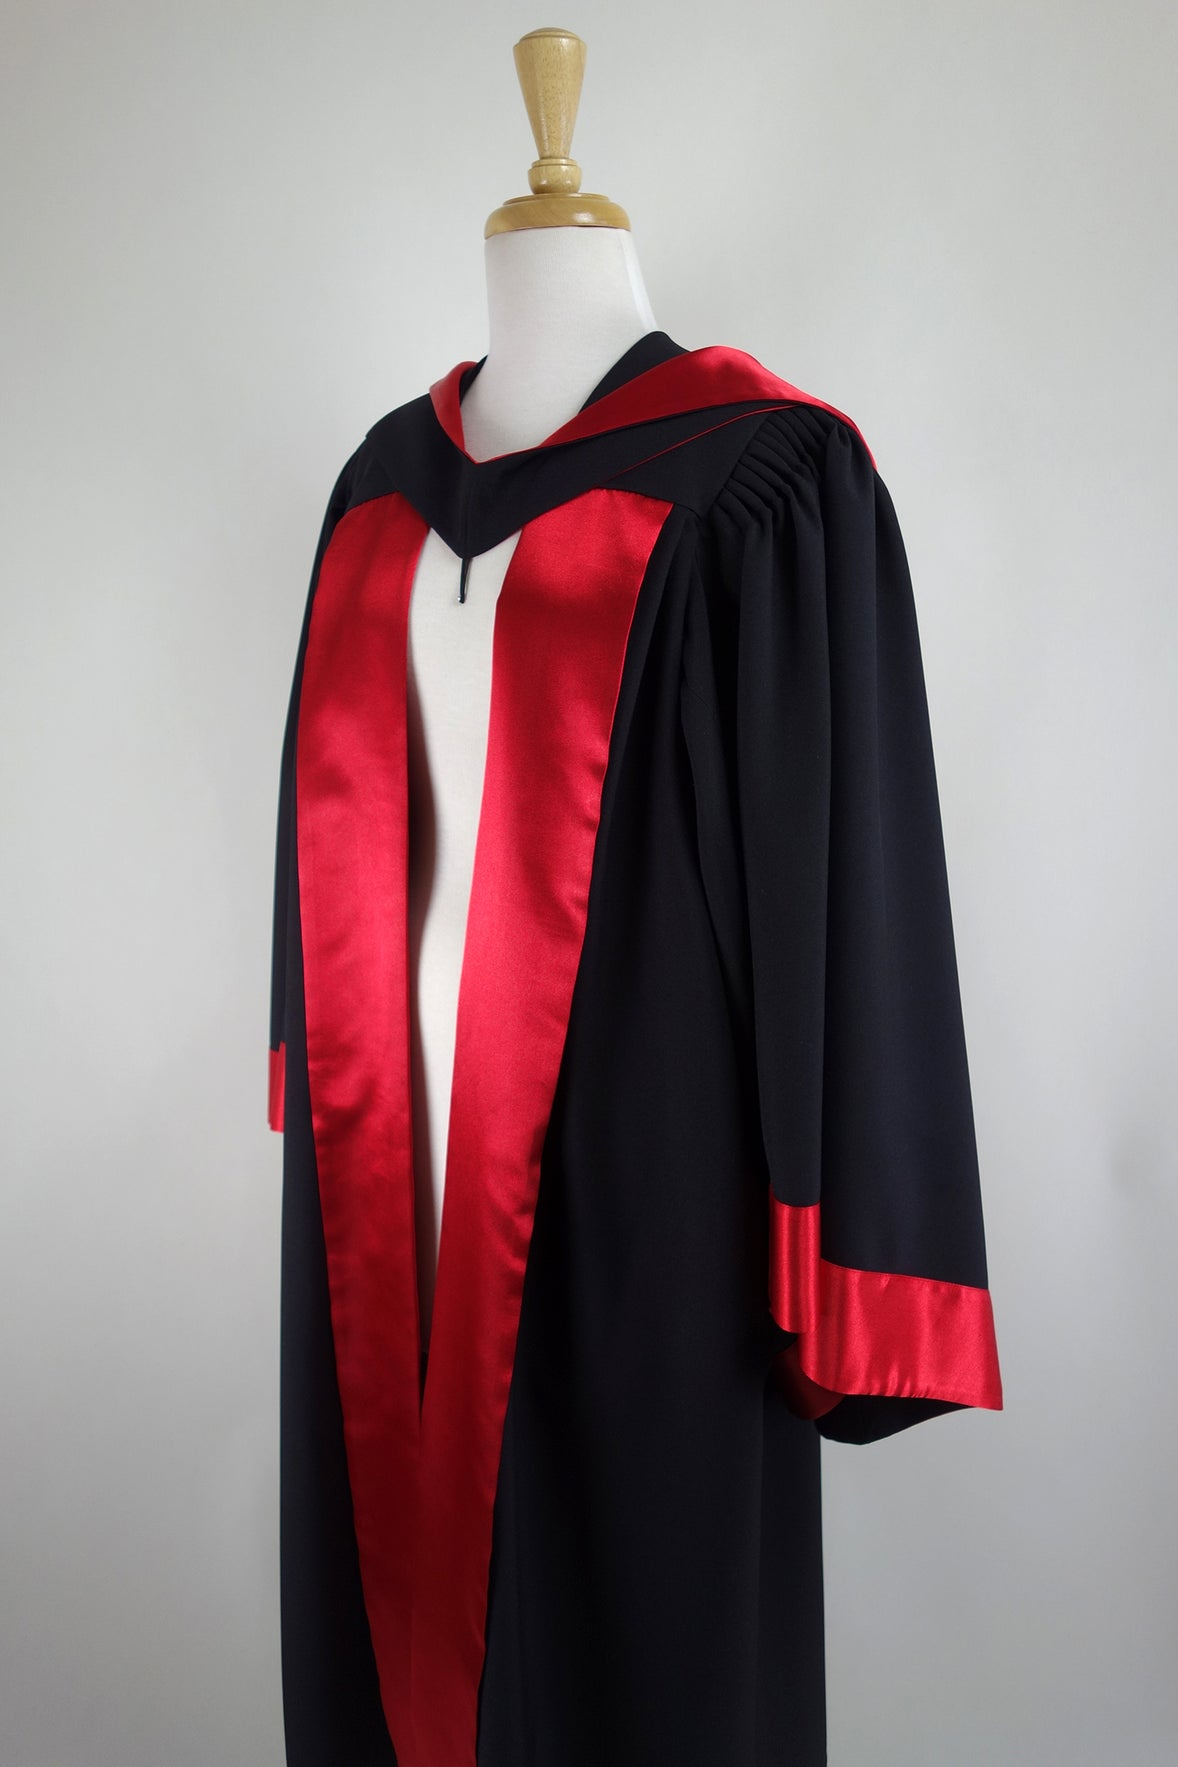 Melbourne College of Divinity PhD Graduation Gown Suite